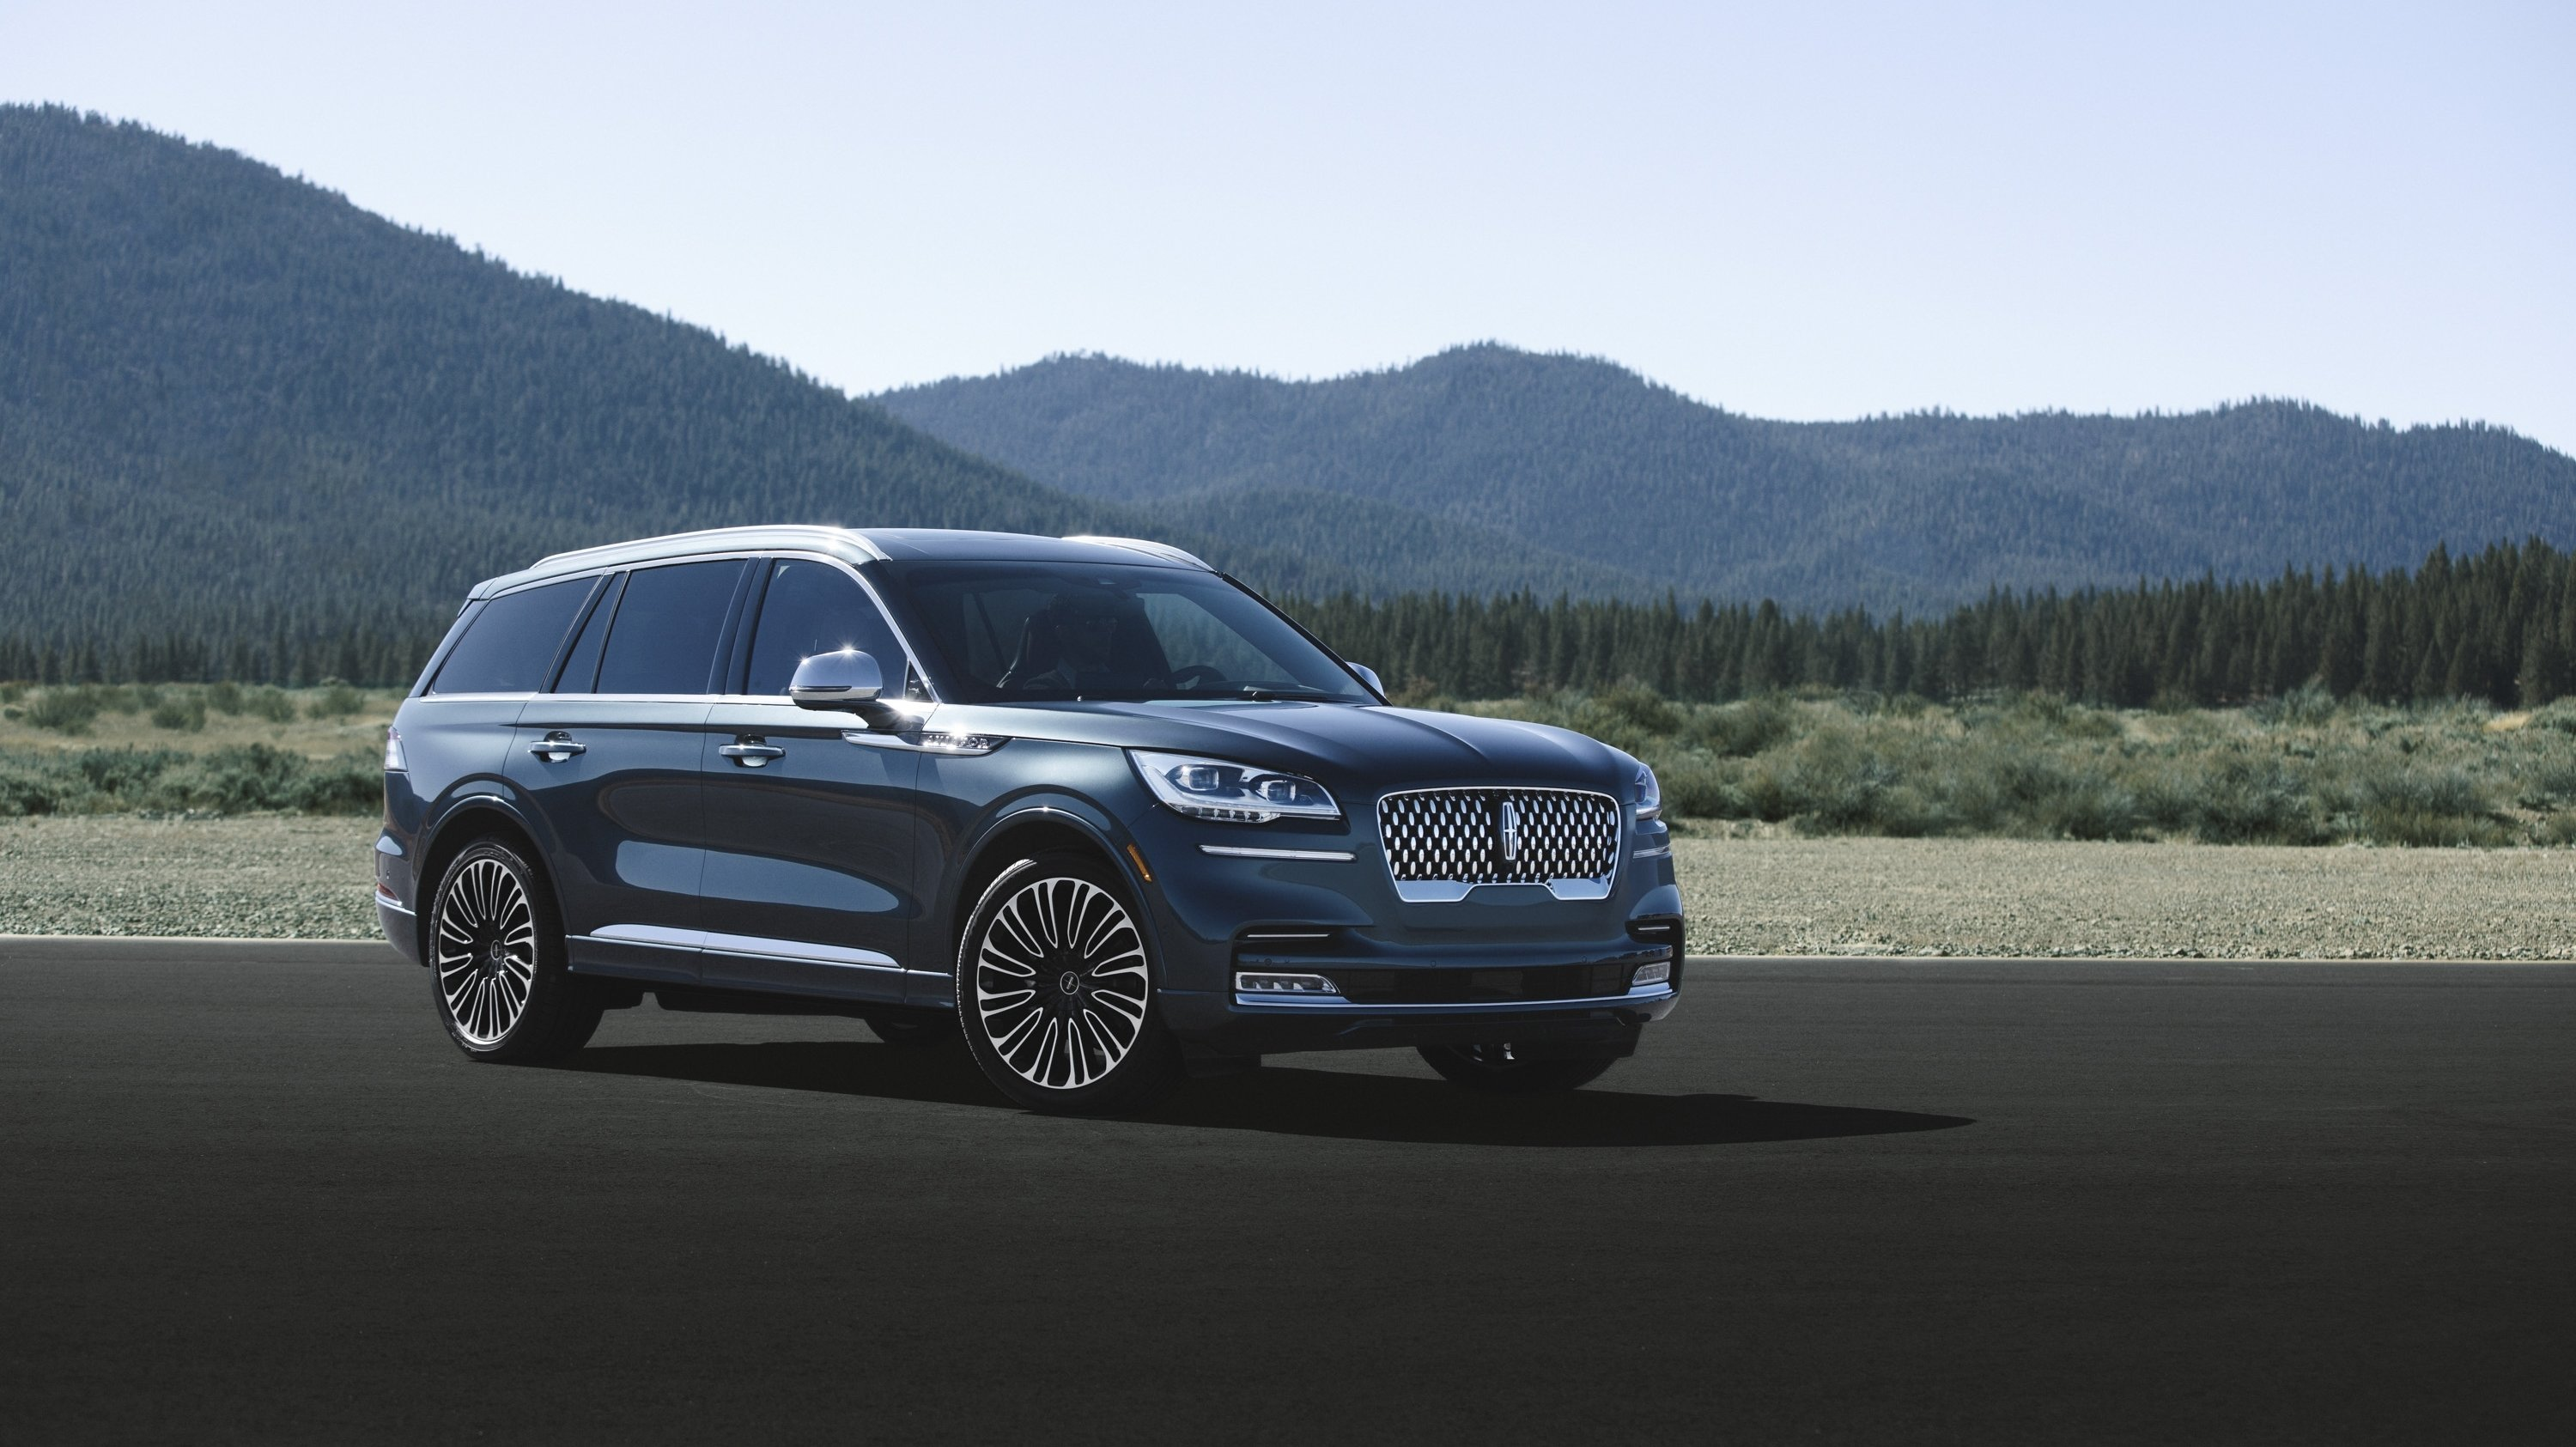 ff5cb0eacd The 2020 Lincoln Aviator